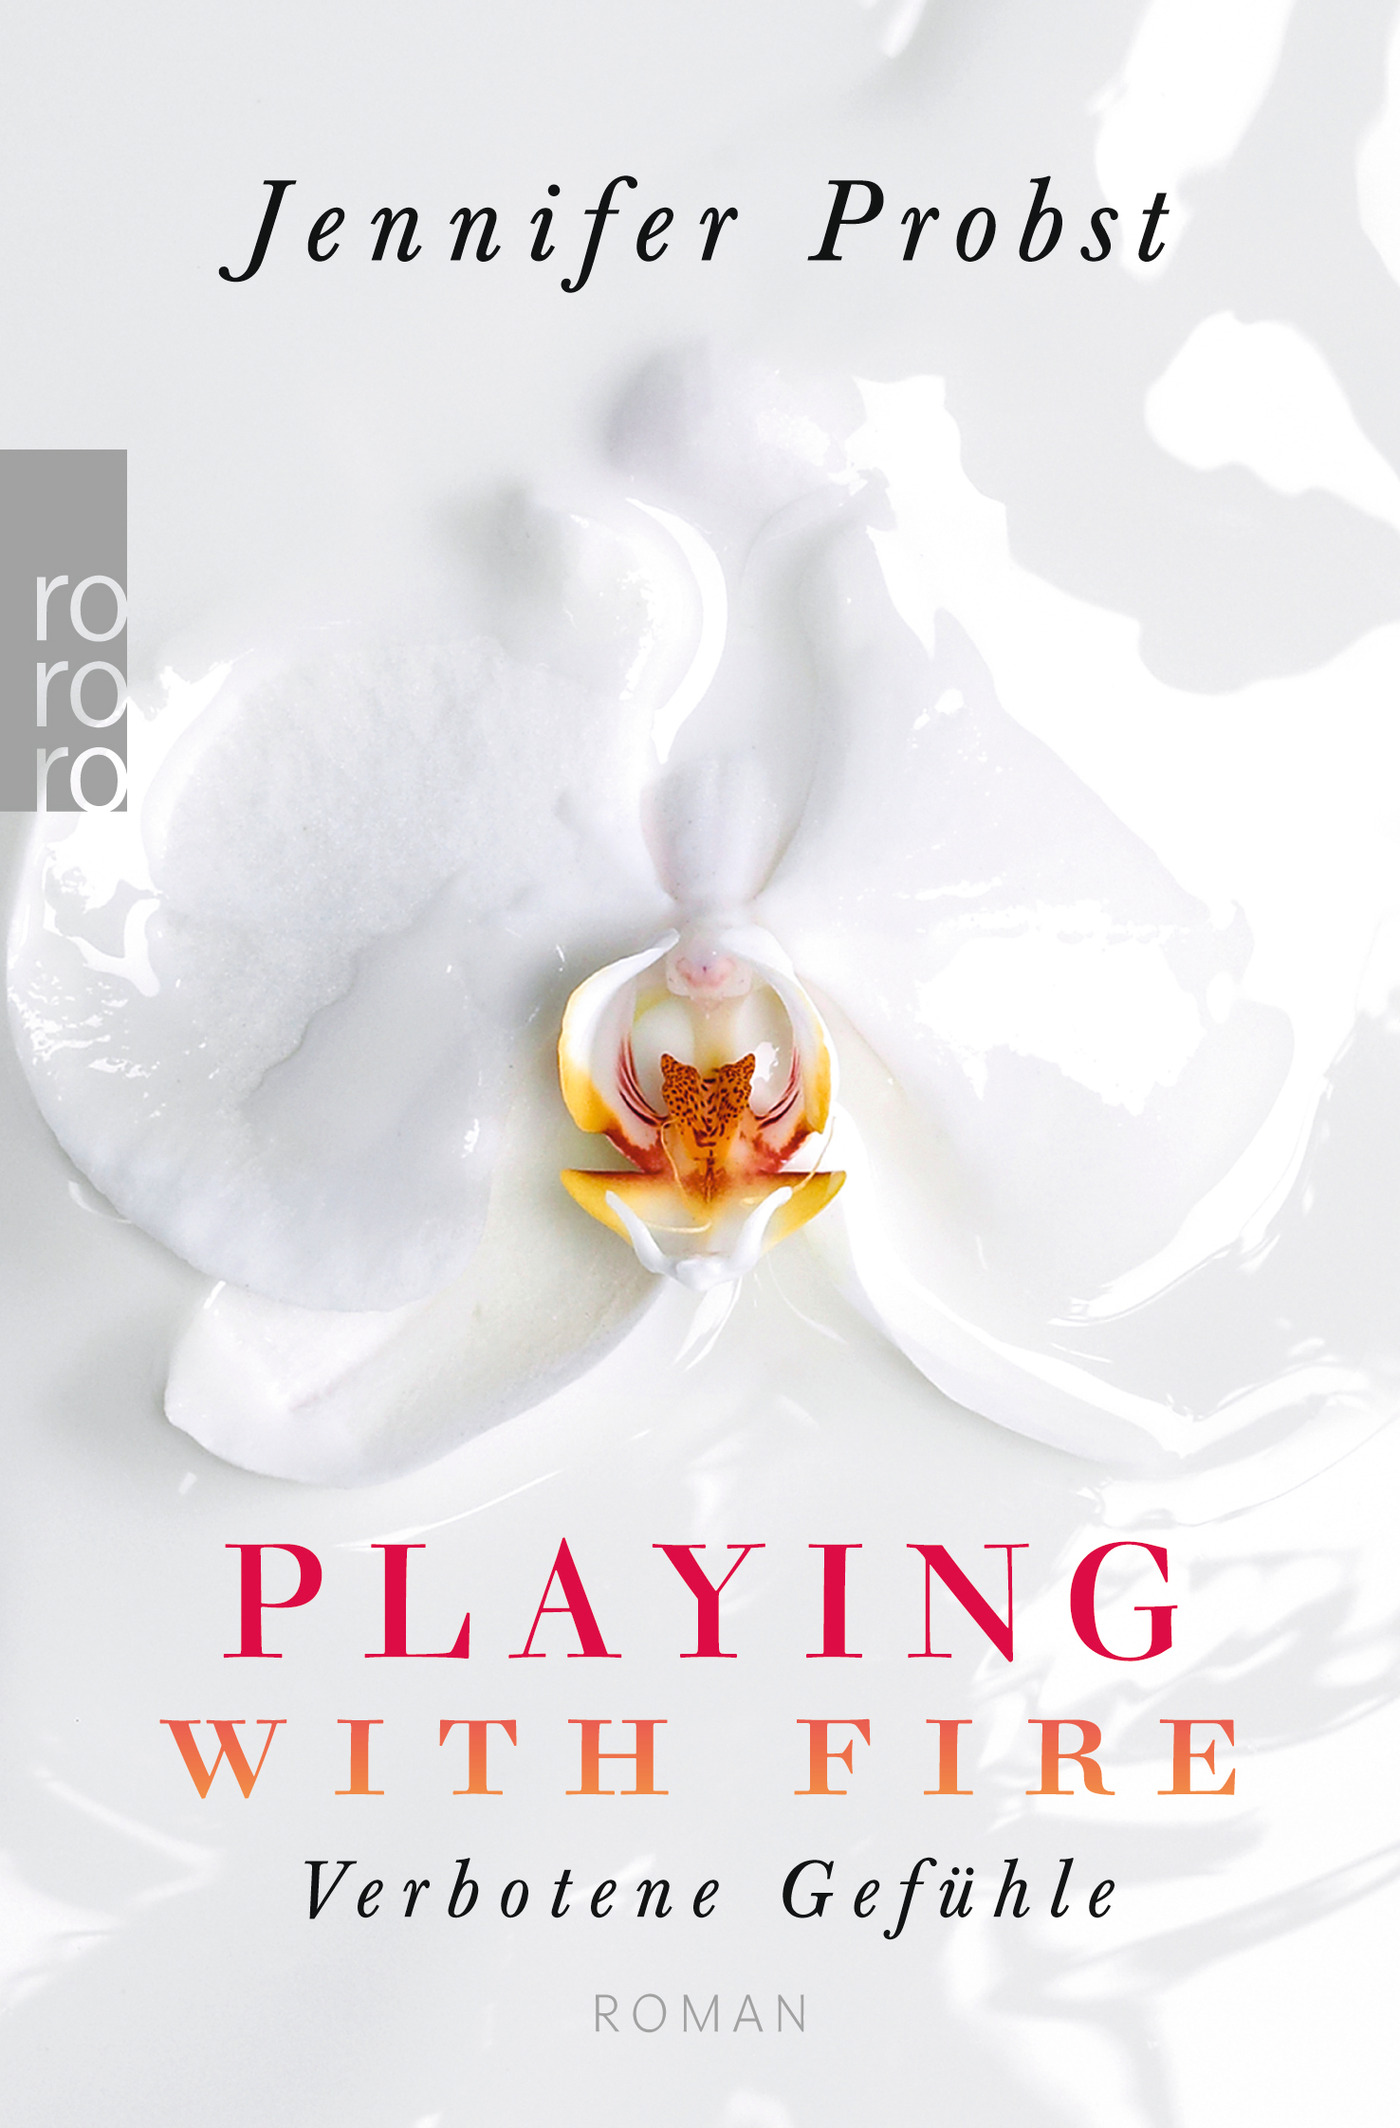 Playing-with-Fire-Verbotene-Gefuehle-Jennifer-Probst